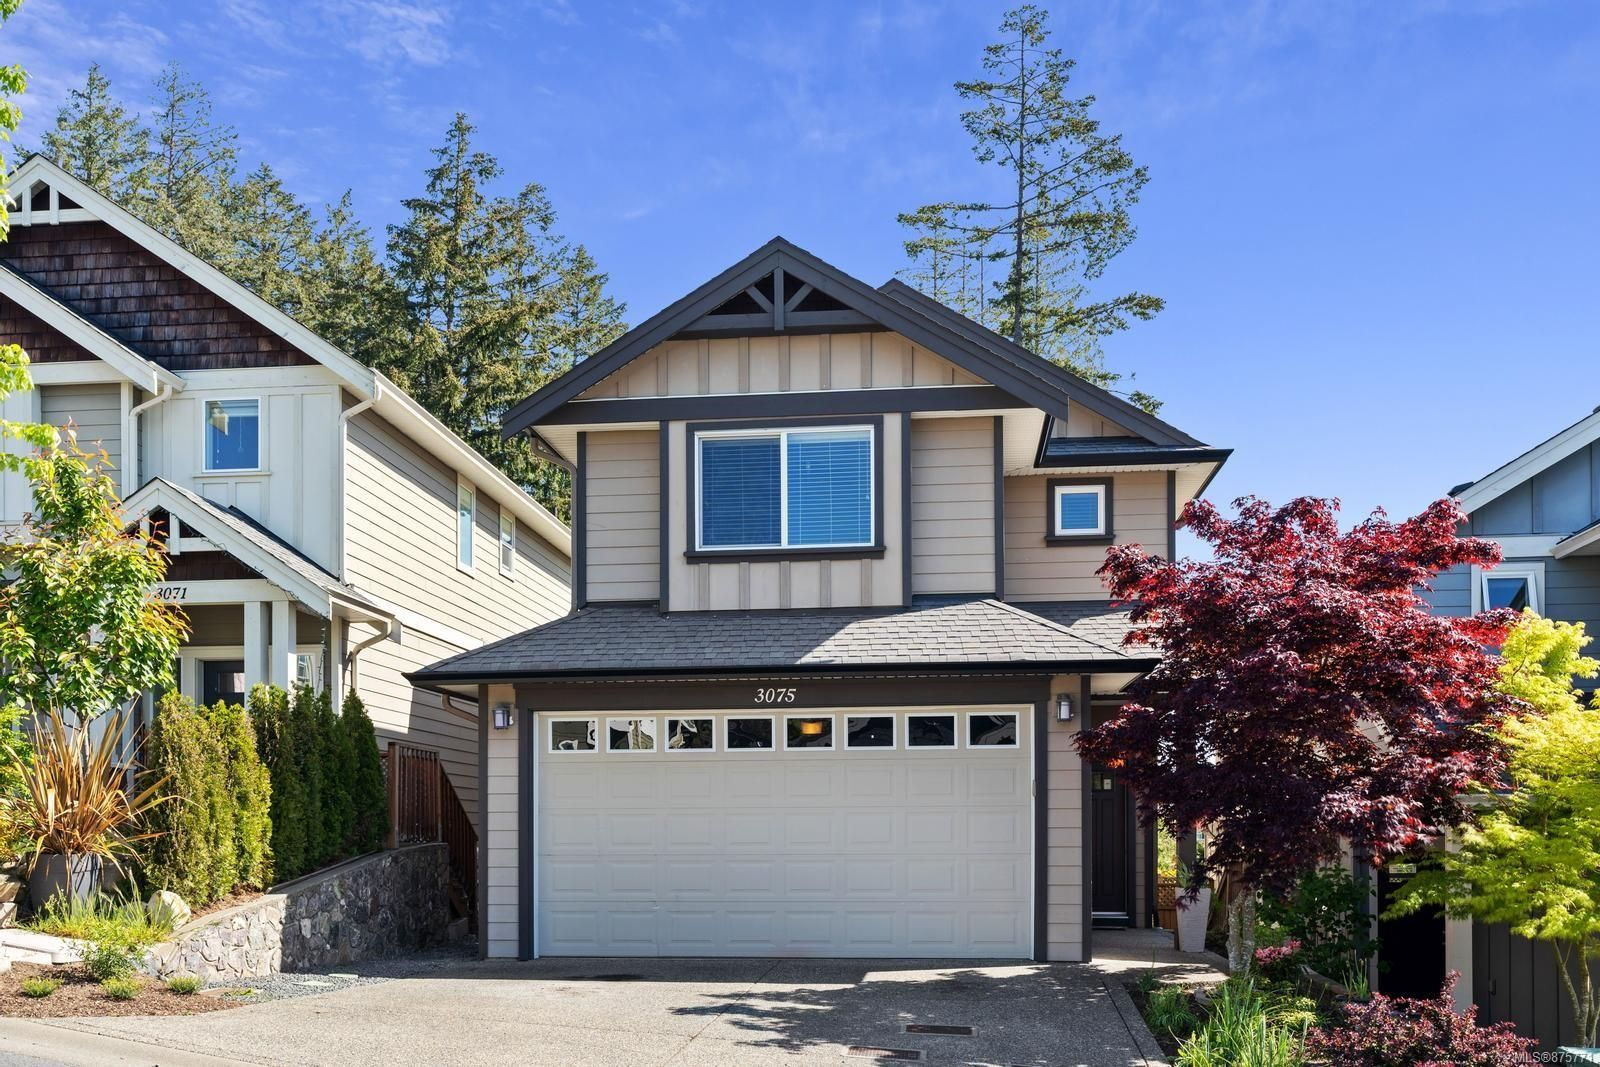 Main Photo: 3075 Alouette Dr in : La Westhills House for sale (Langford)  : MLS®# 875771